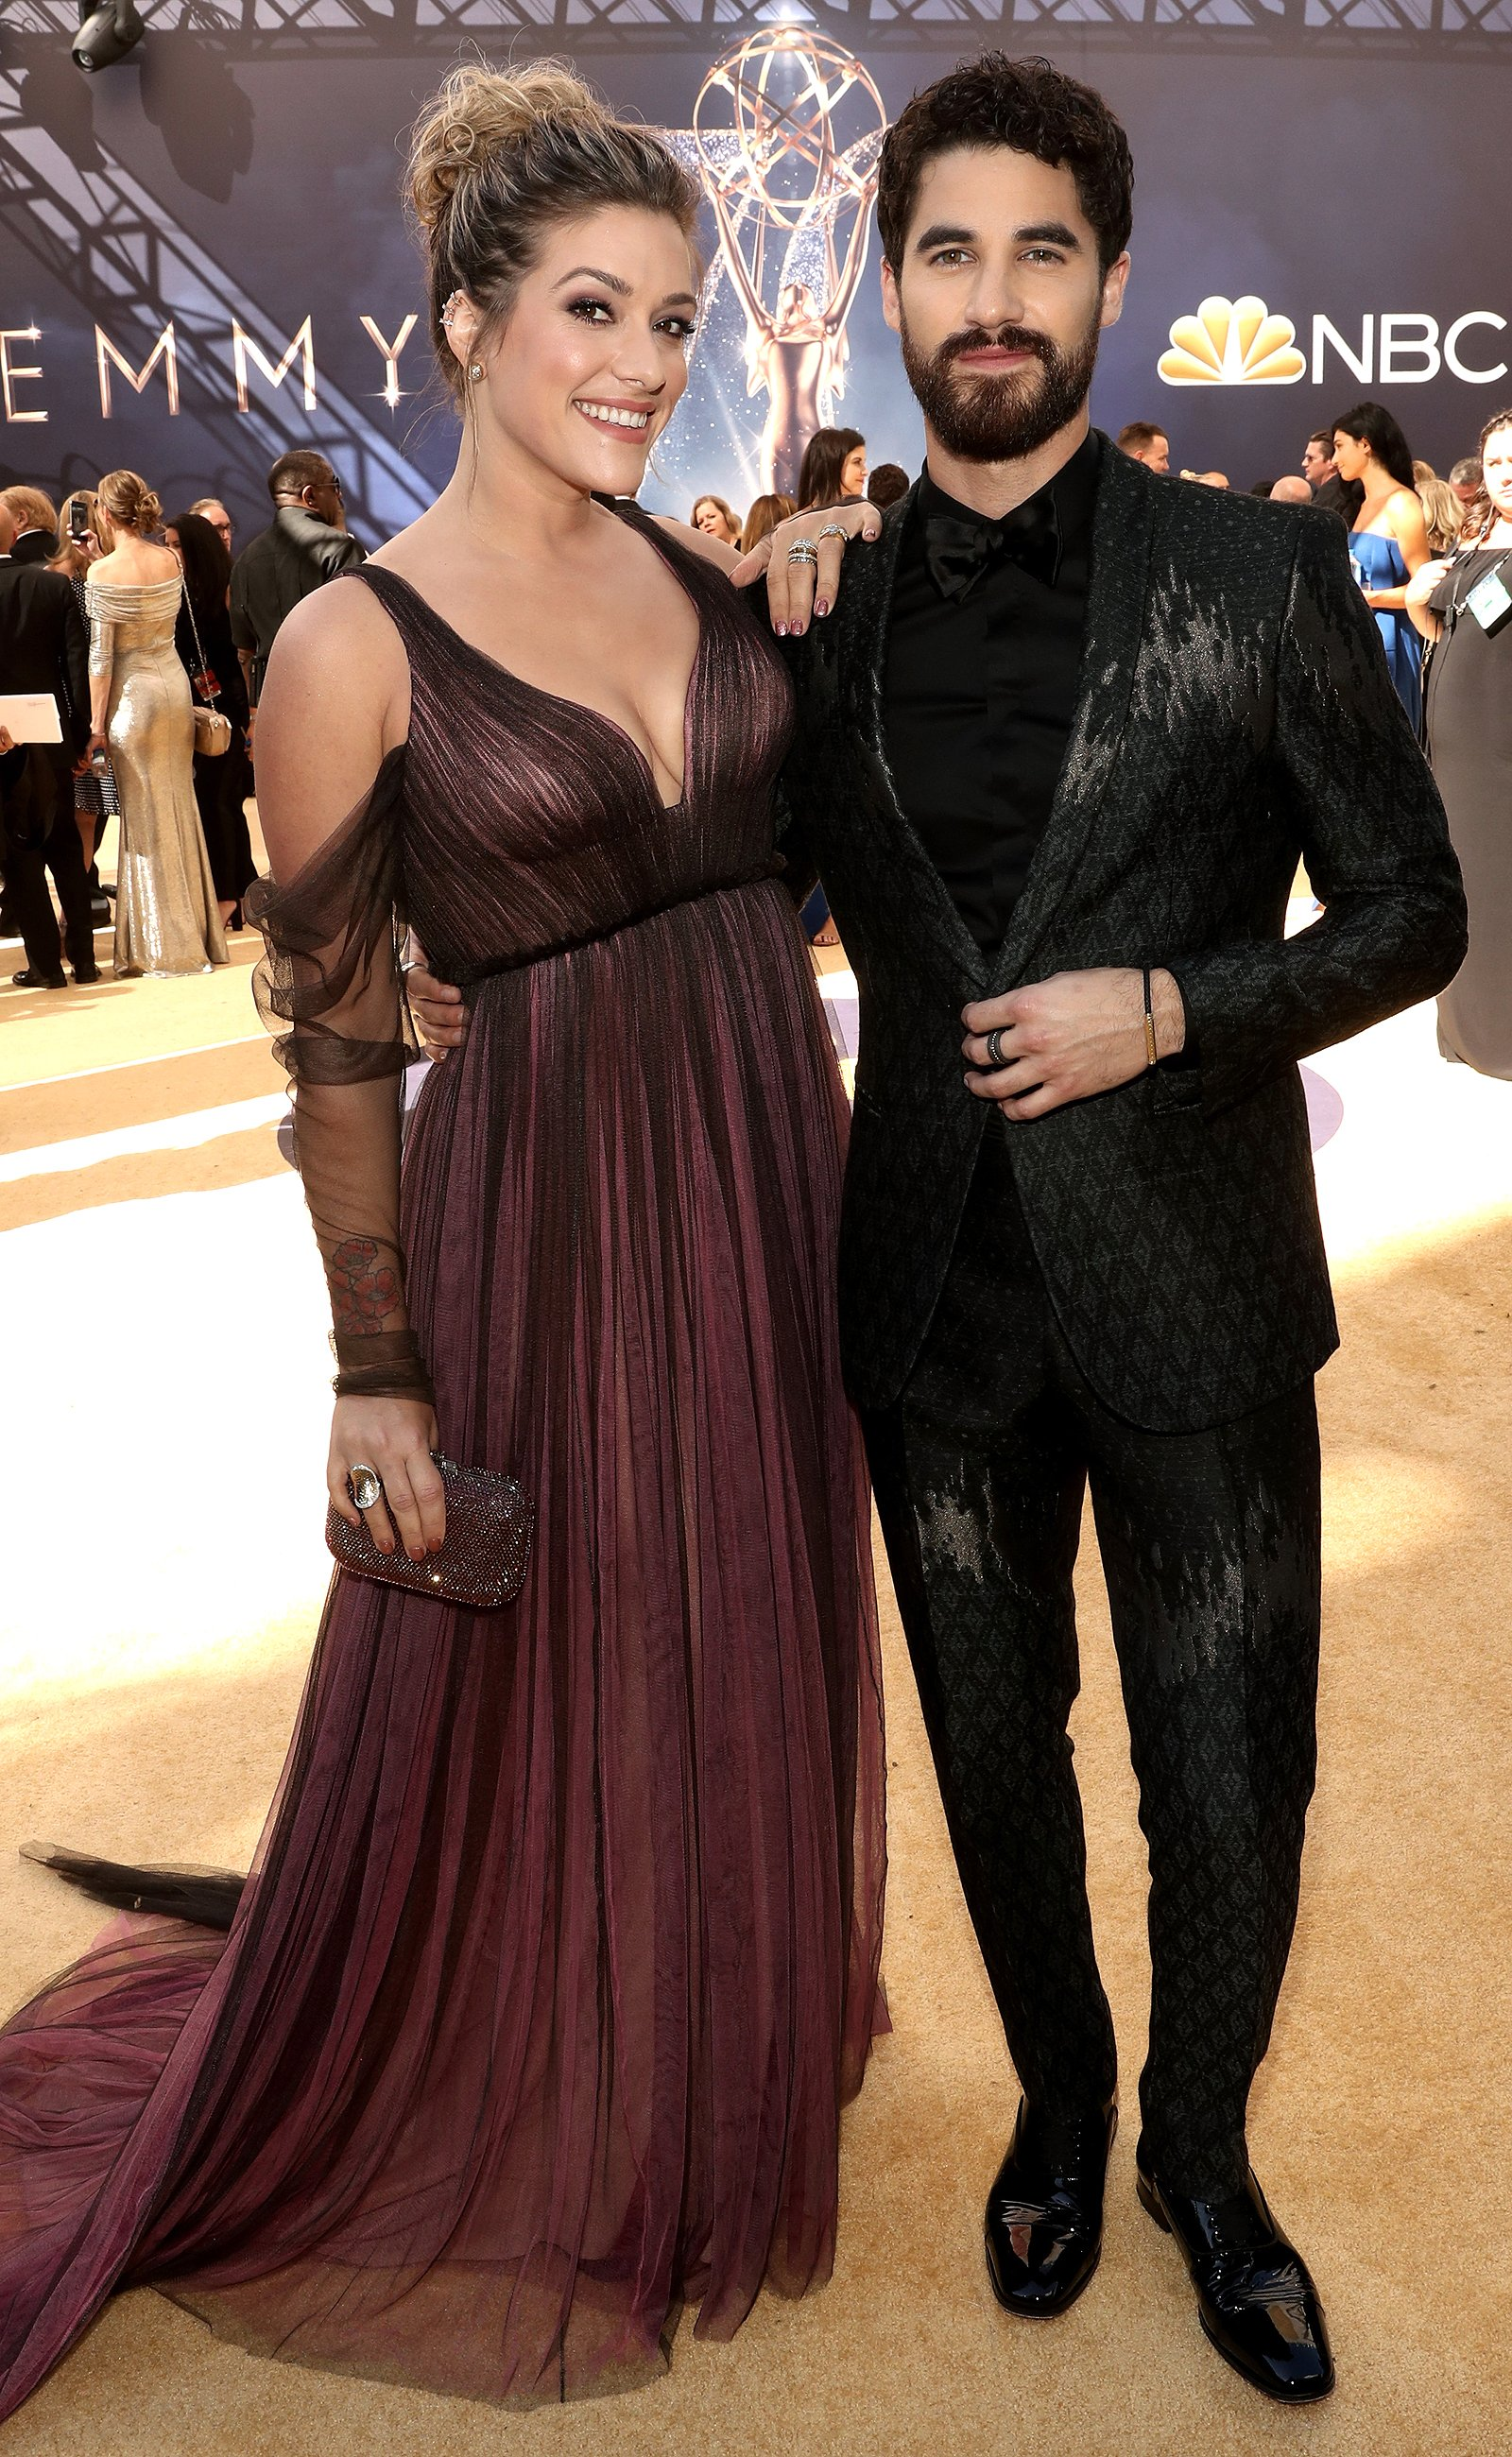 Darren Criss Gives Loving Shout-Out to His Fiancée as He Wins Emmy Award: 'You Pump the Music Up in My Life'